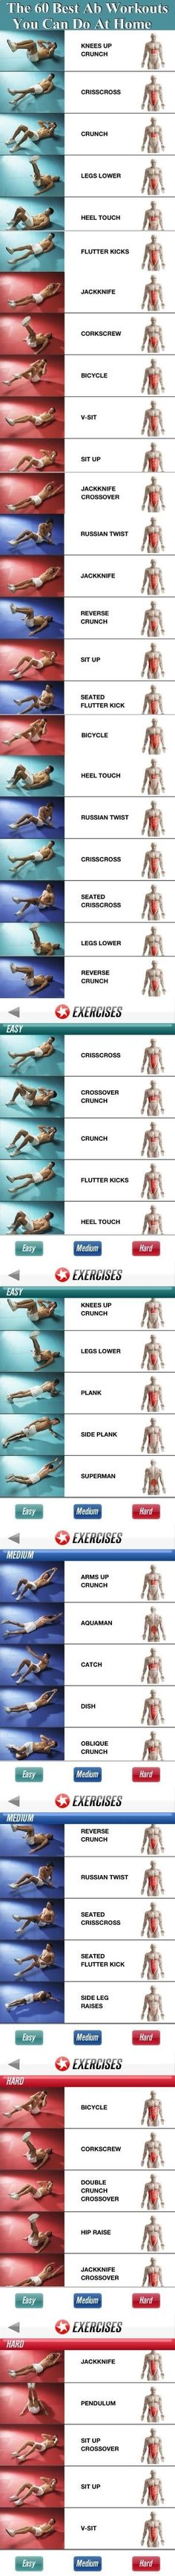 Belly Fat Workout - The 60 Best Ab Workouts You Can Do From Home Pictures, Photos, and Images for Facebook, Tumblr, Pinterest, and Twitter: Do This One Unusual 10-Minute Trick Before Work To Melt Away 15+ Pounds of Belly Fat #exercisesforbellyfat